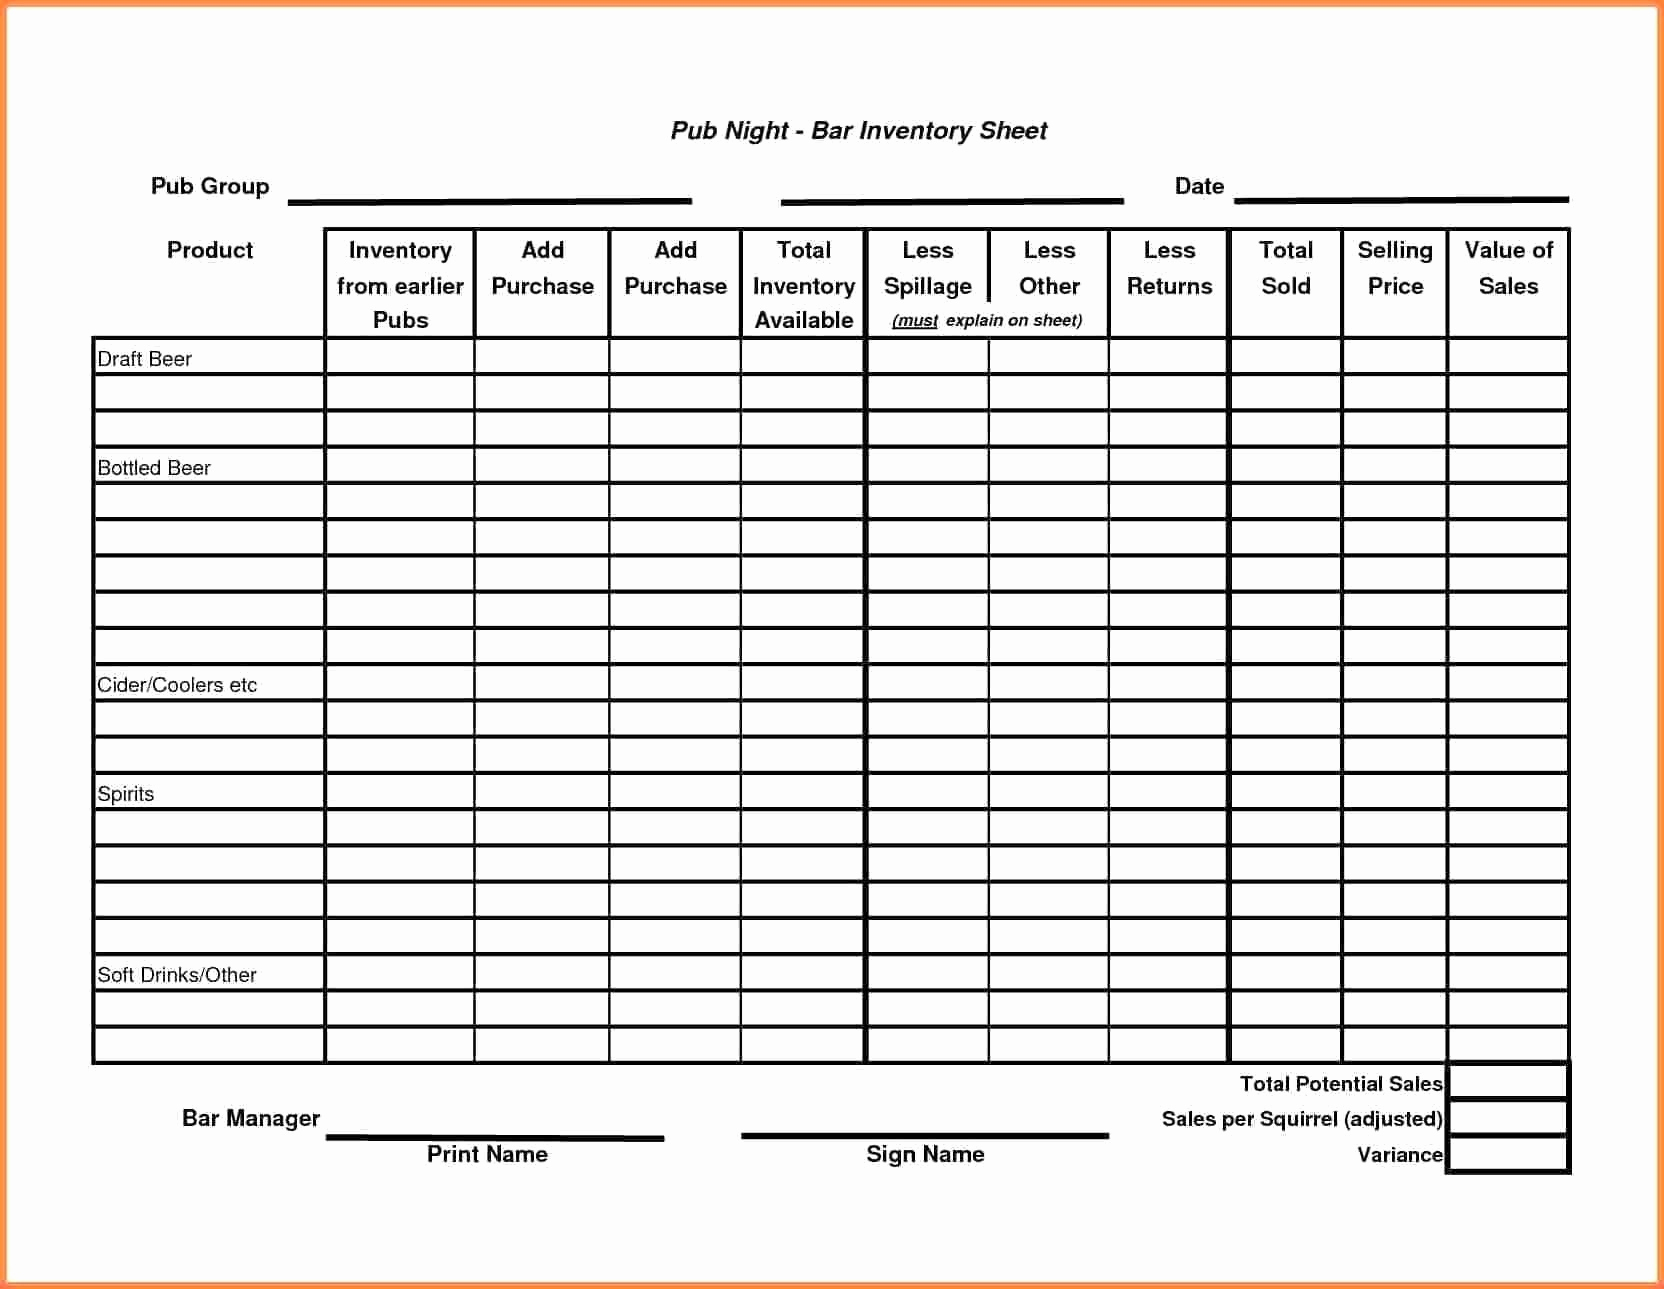 Liquor Inventory Spreadsheets Luxury Bar Liquor Inventory With Free Liquor Inventory Spreadsheet Excel